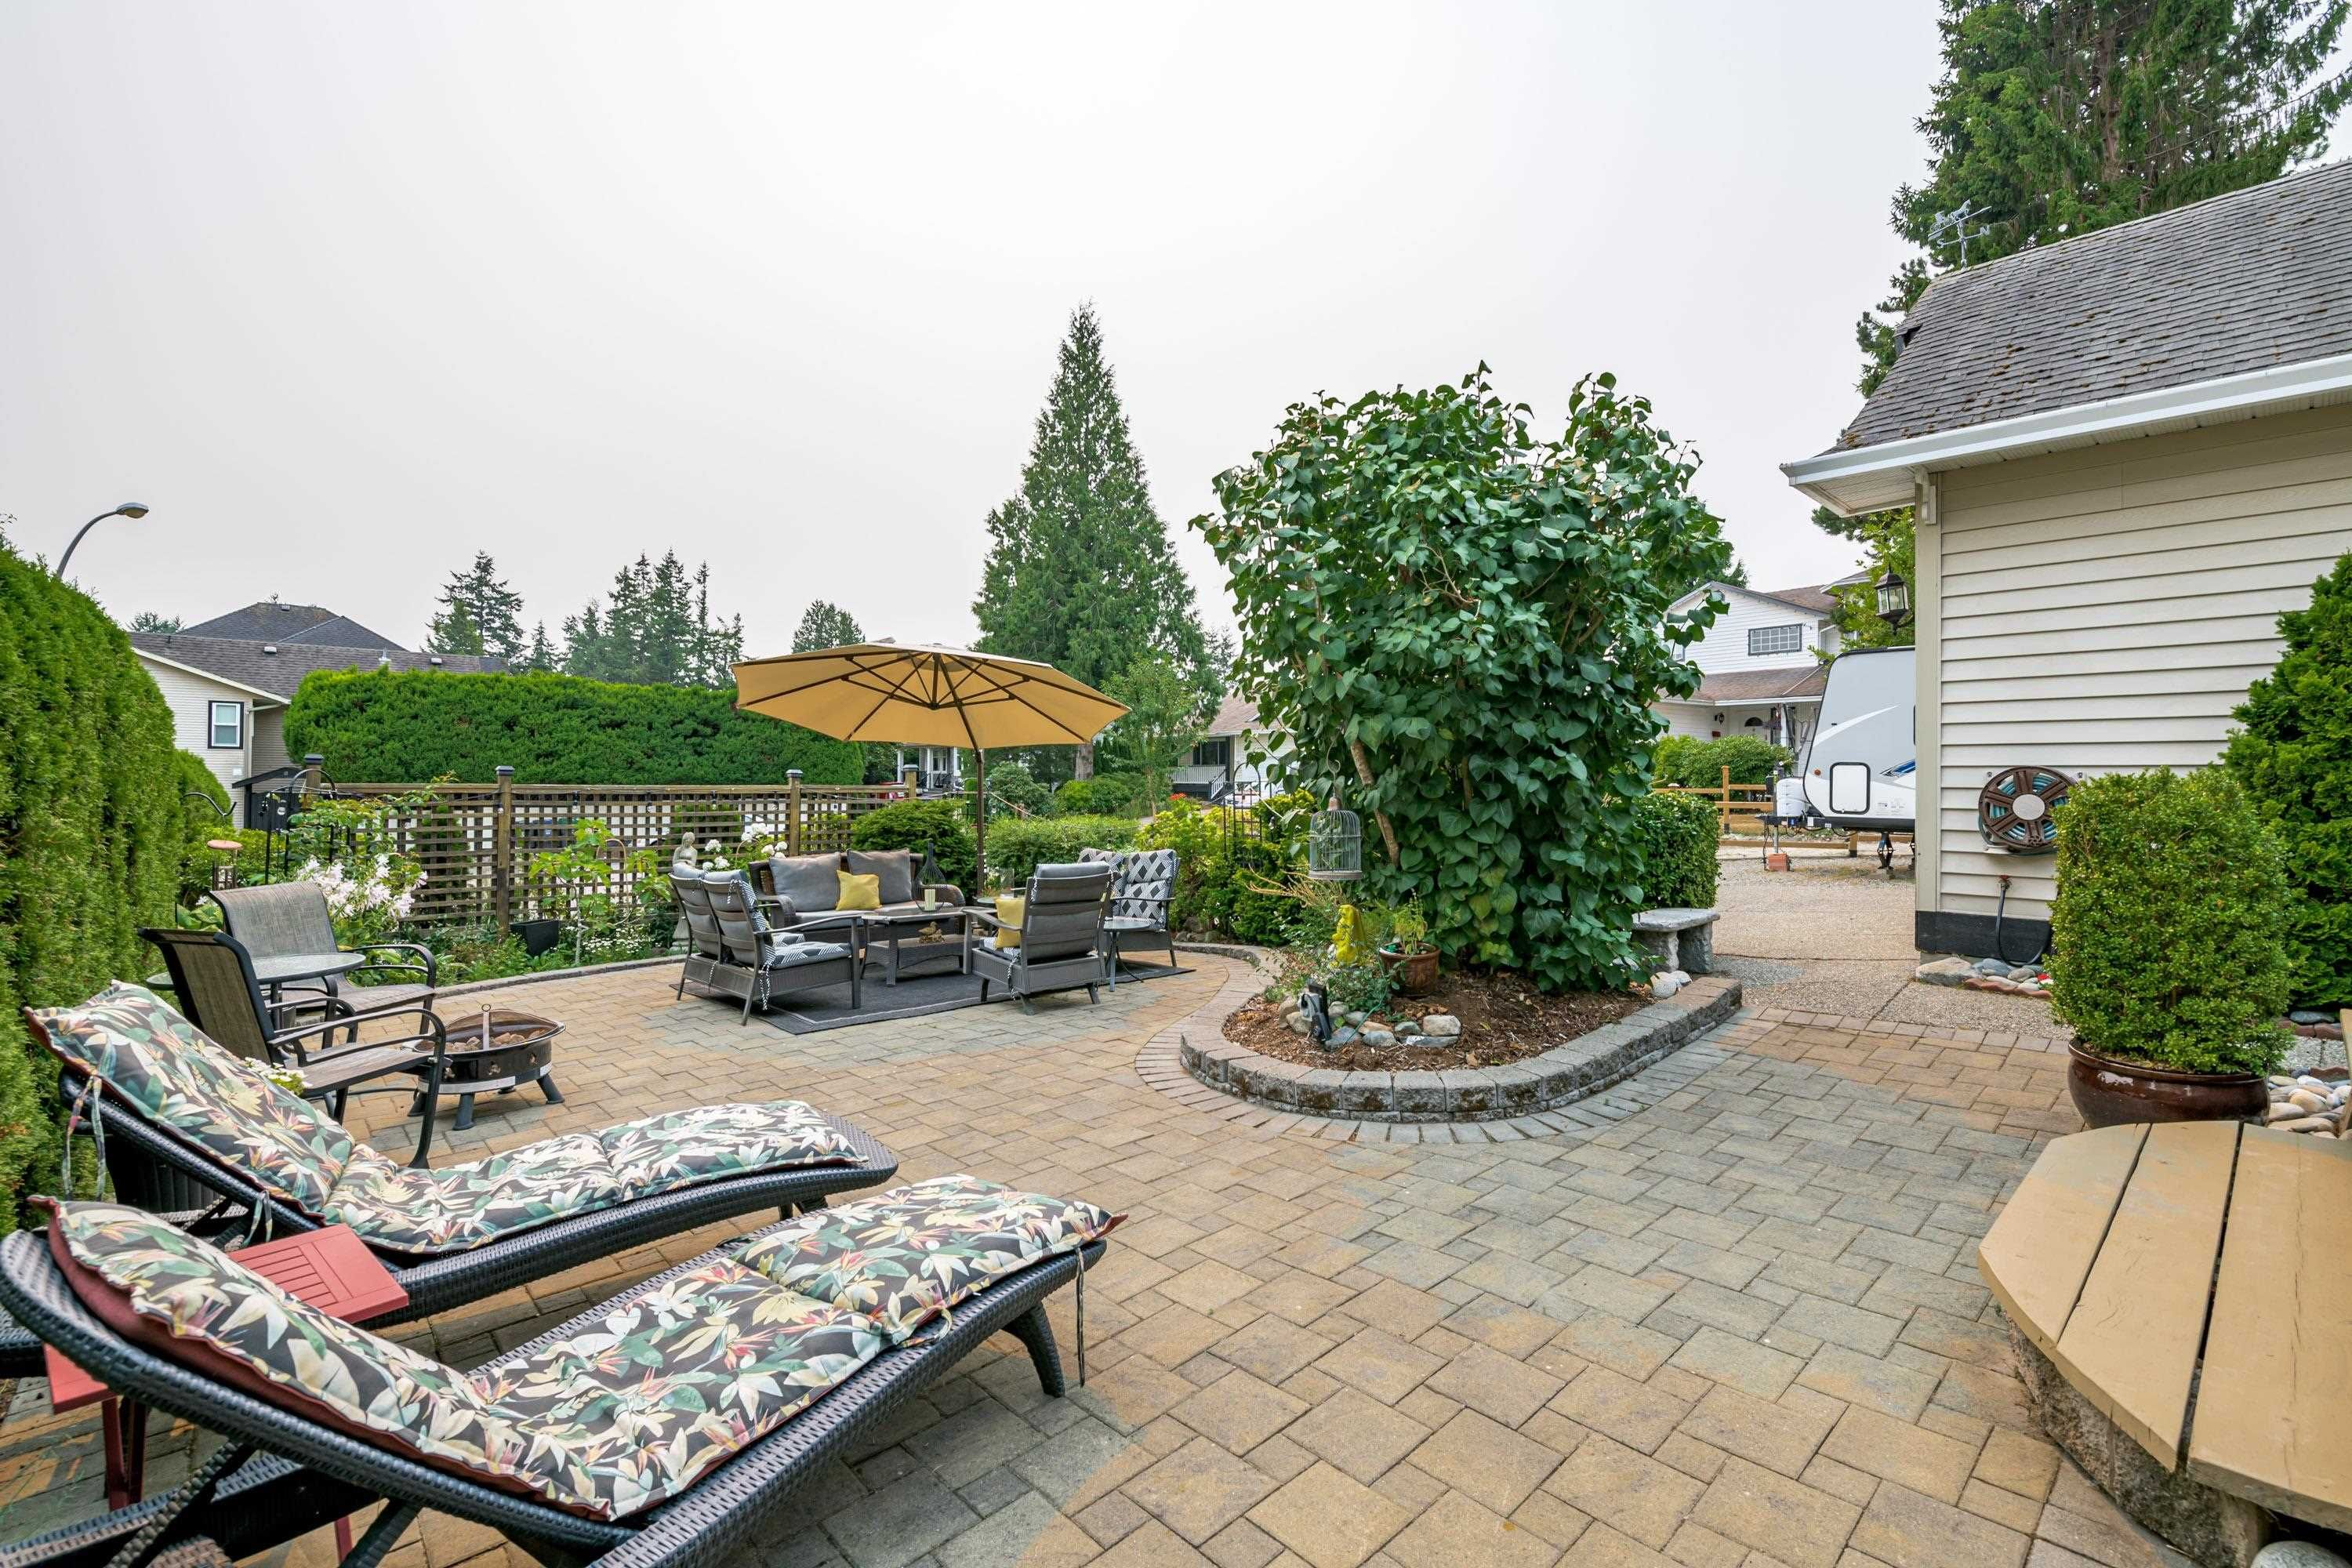 """Main Photo: 16043 10A Avenue in Surrey: King George Corridor House for sale in """"South Meridian"""" (South Surrey White Rock)  : MLS®# R2612889"""